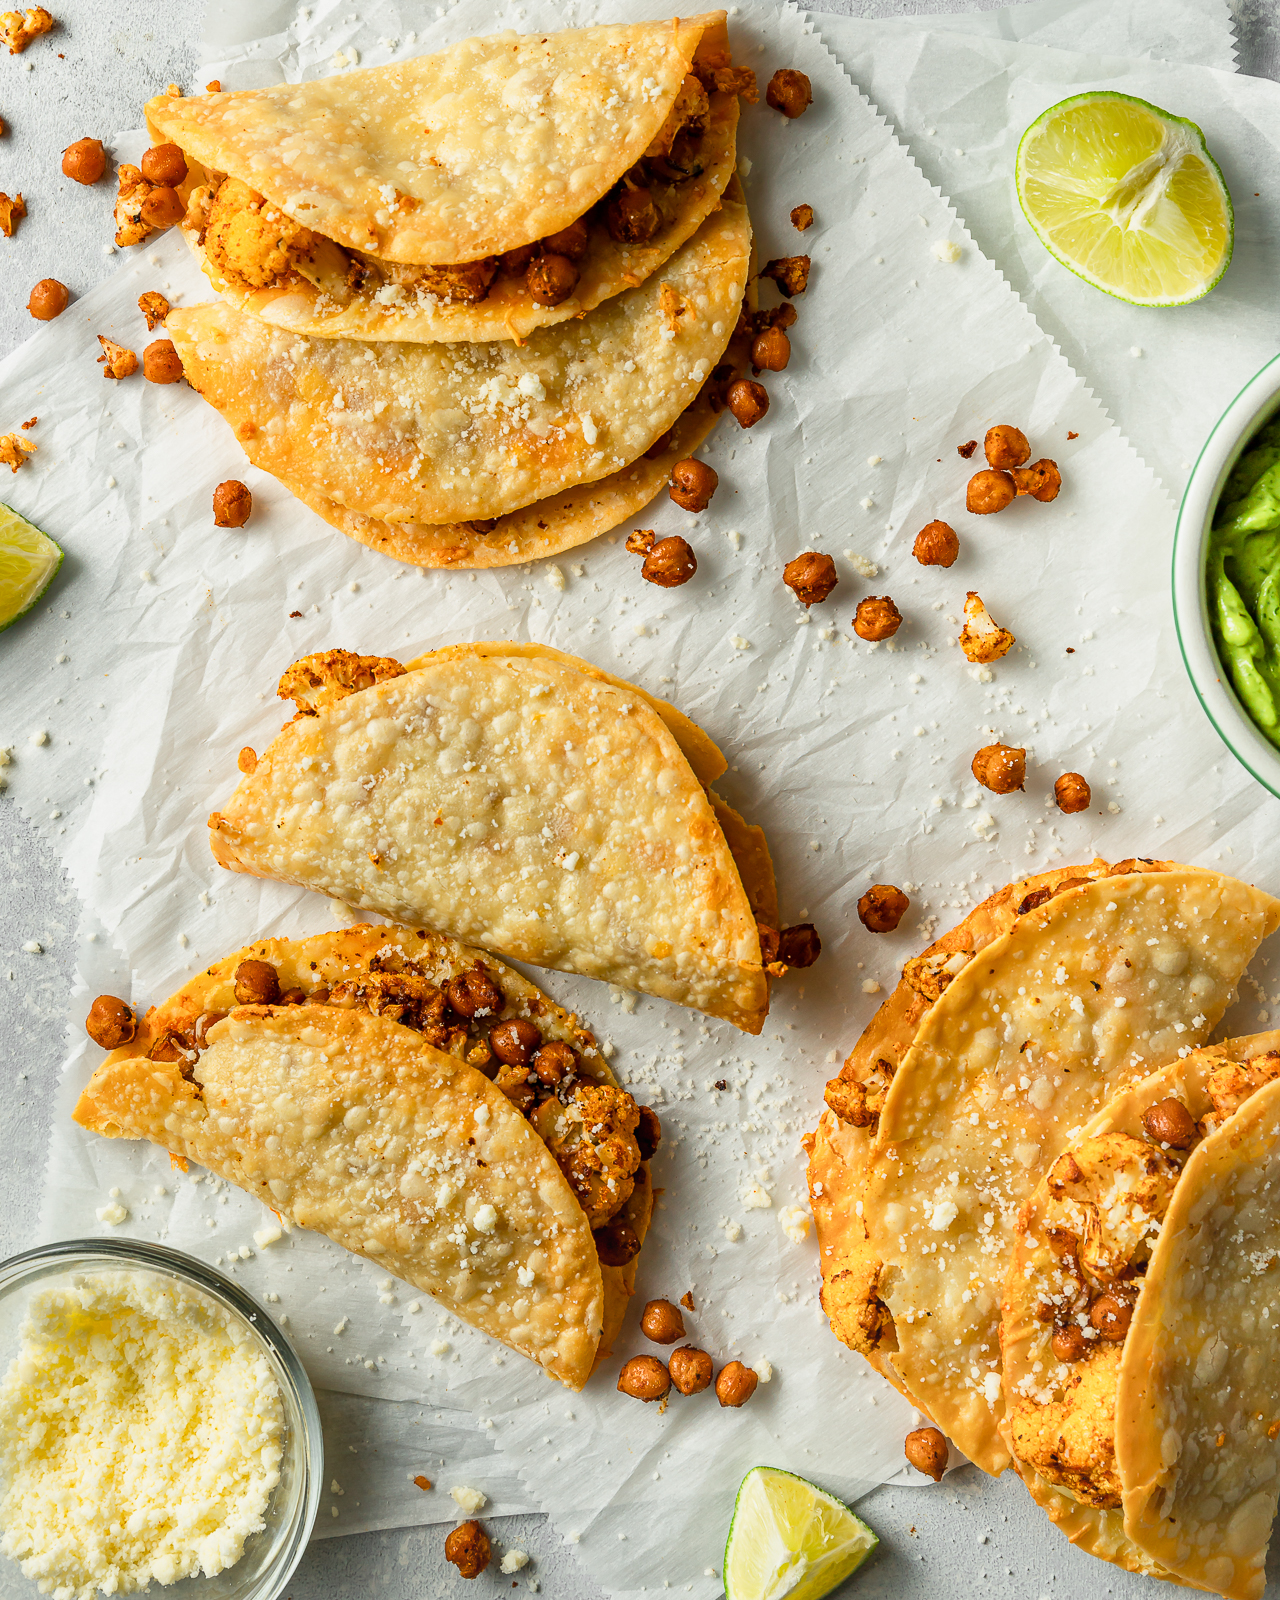 Cauliflower and Chickpea Tacos with avocado and hot sauce